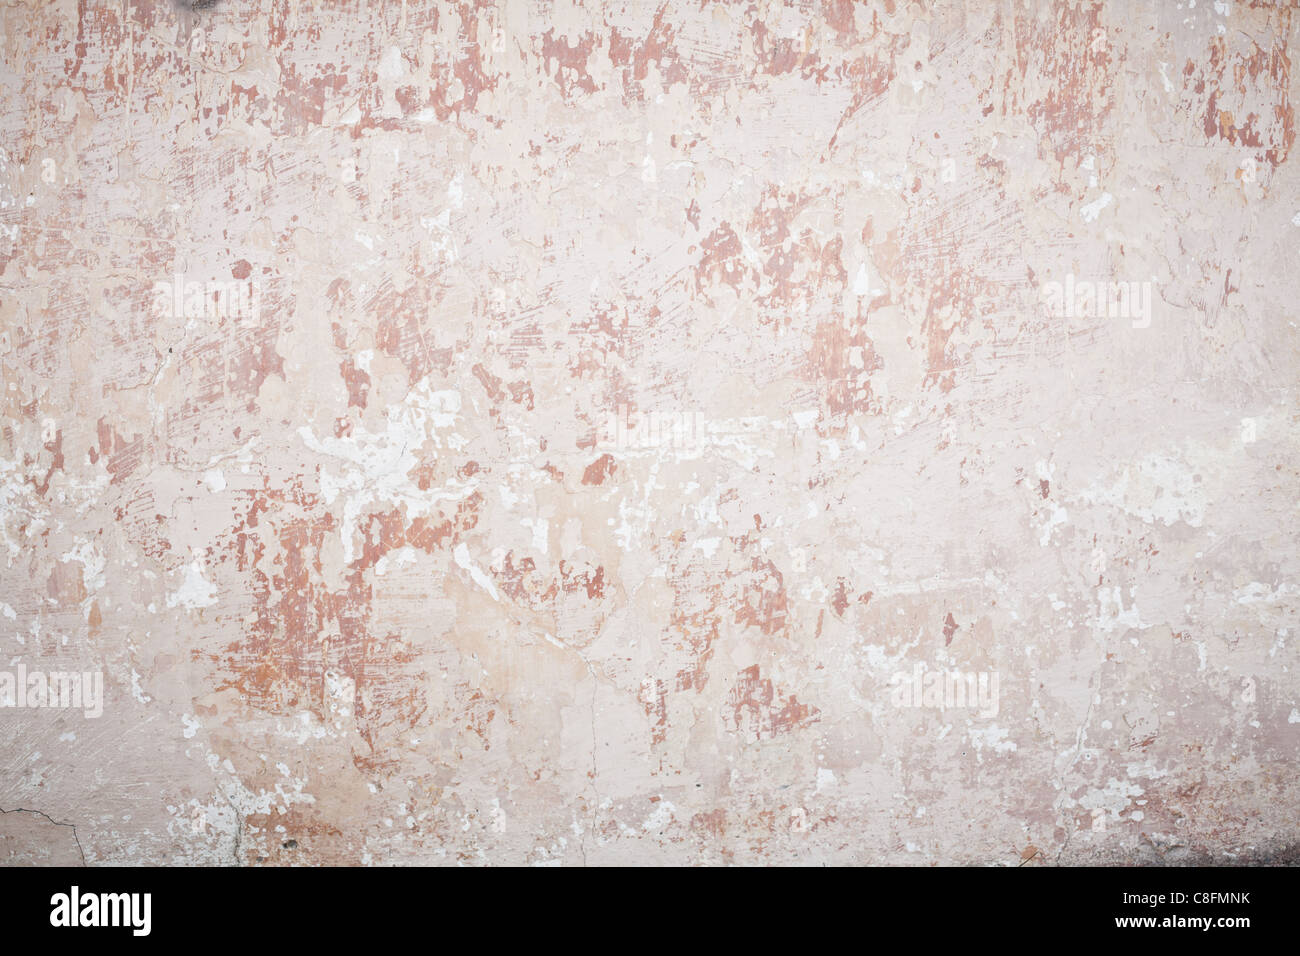 Old damaged wall - Stock Image